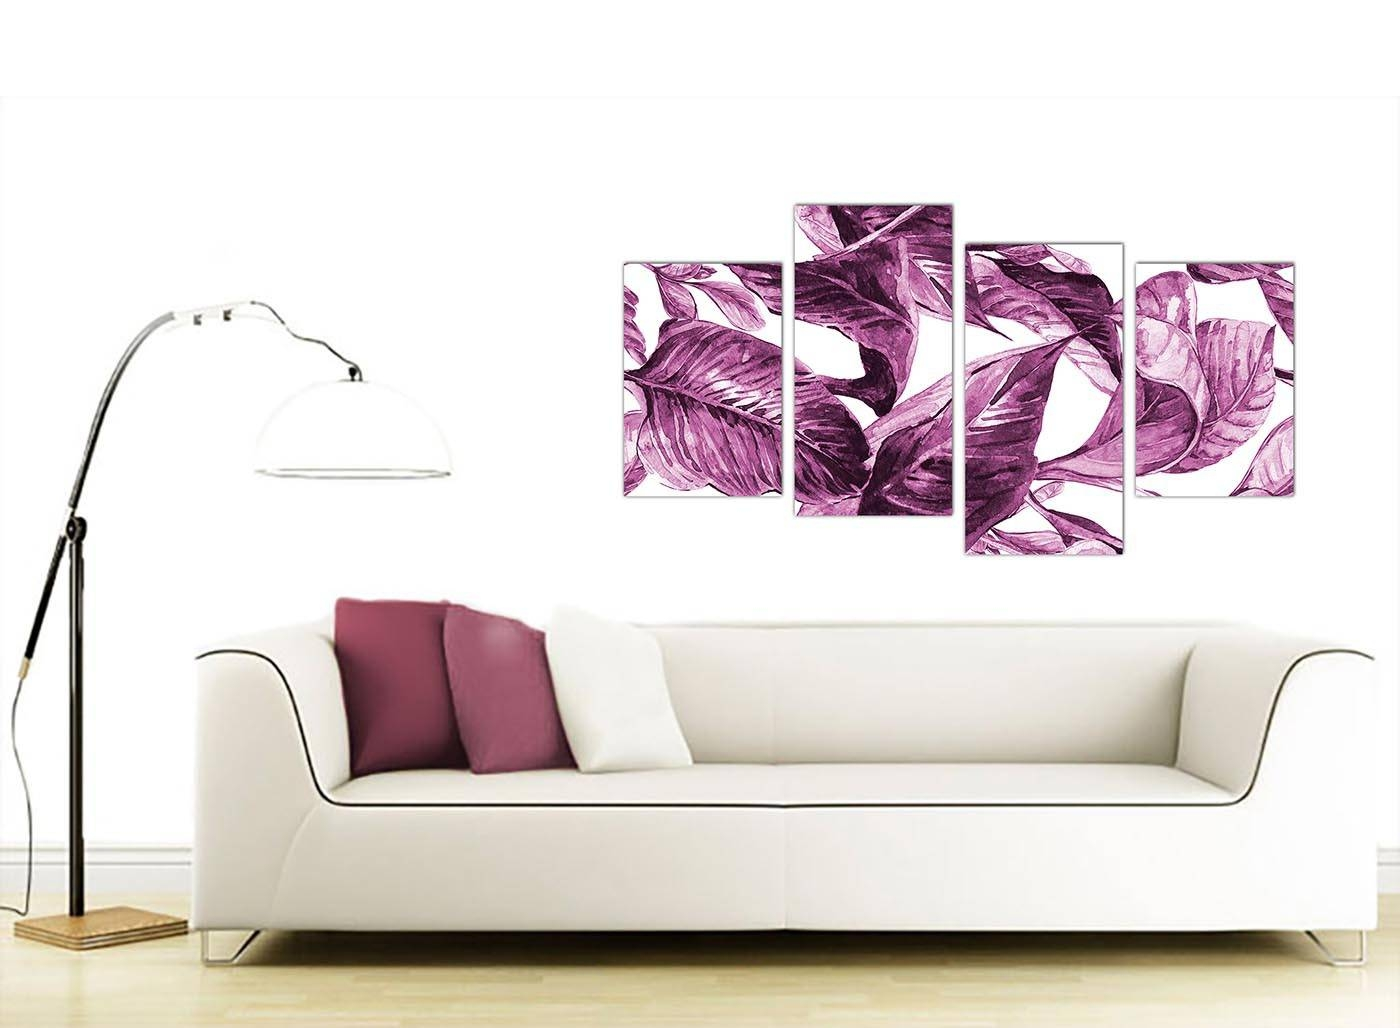 Large Plum Aubergine White Tropical Leaves Canvas Wall Art – Multi With Regard To Most Recent Aubergine Wall Art (View 15 of 20)